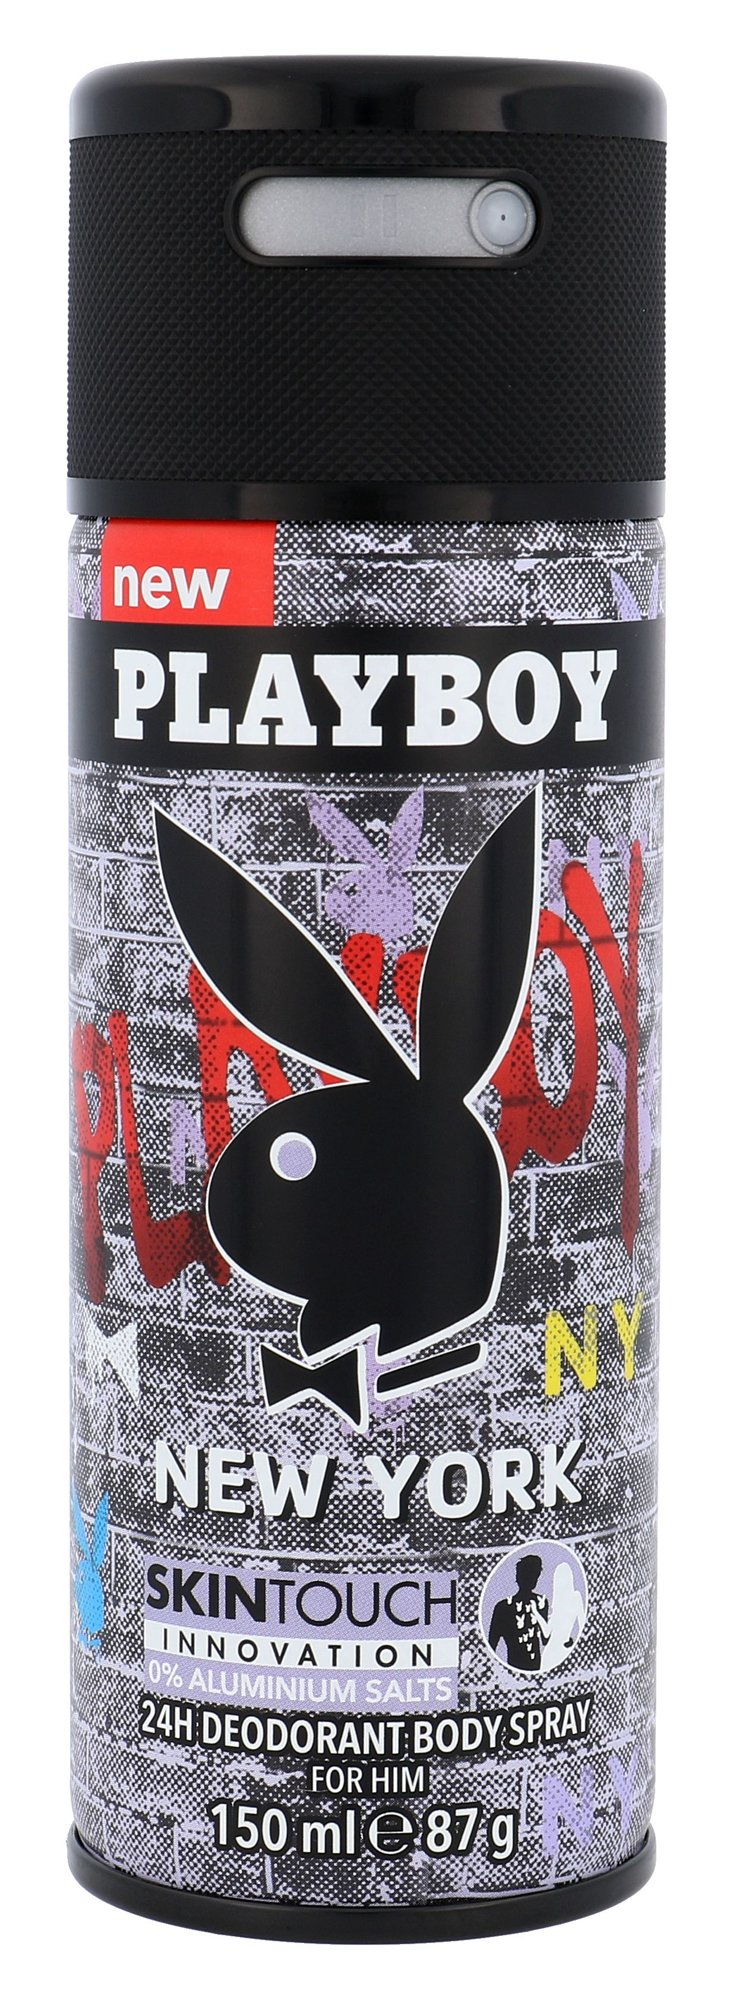 Playboy New York Deodorant 150ml